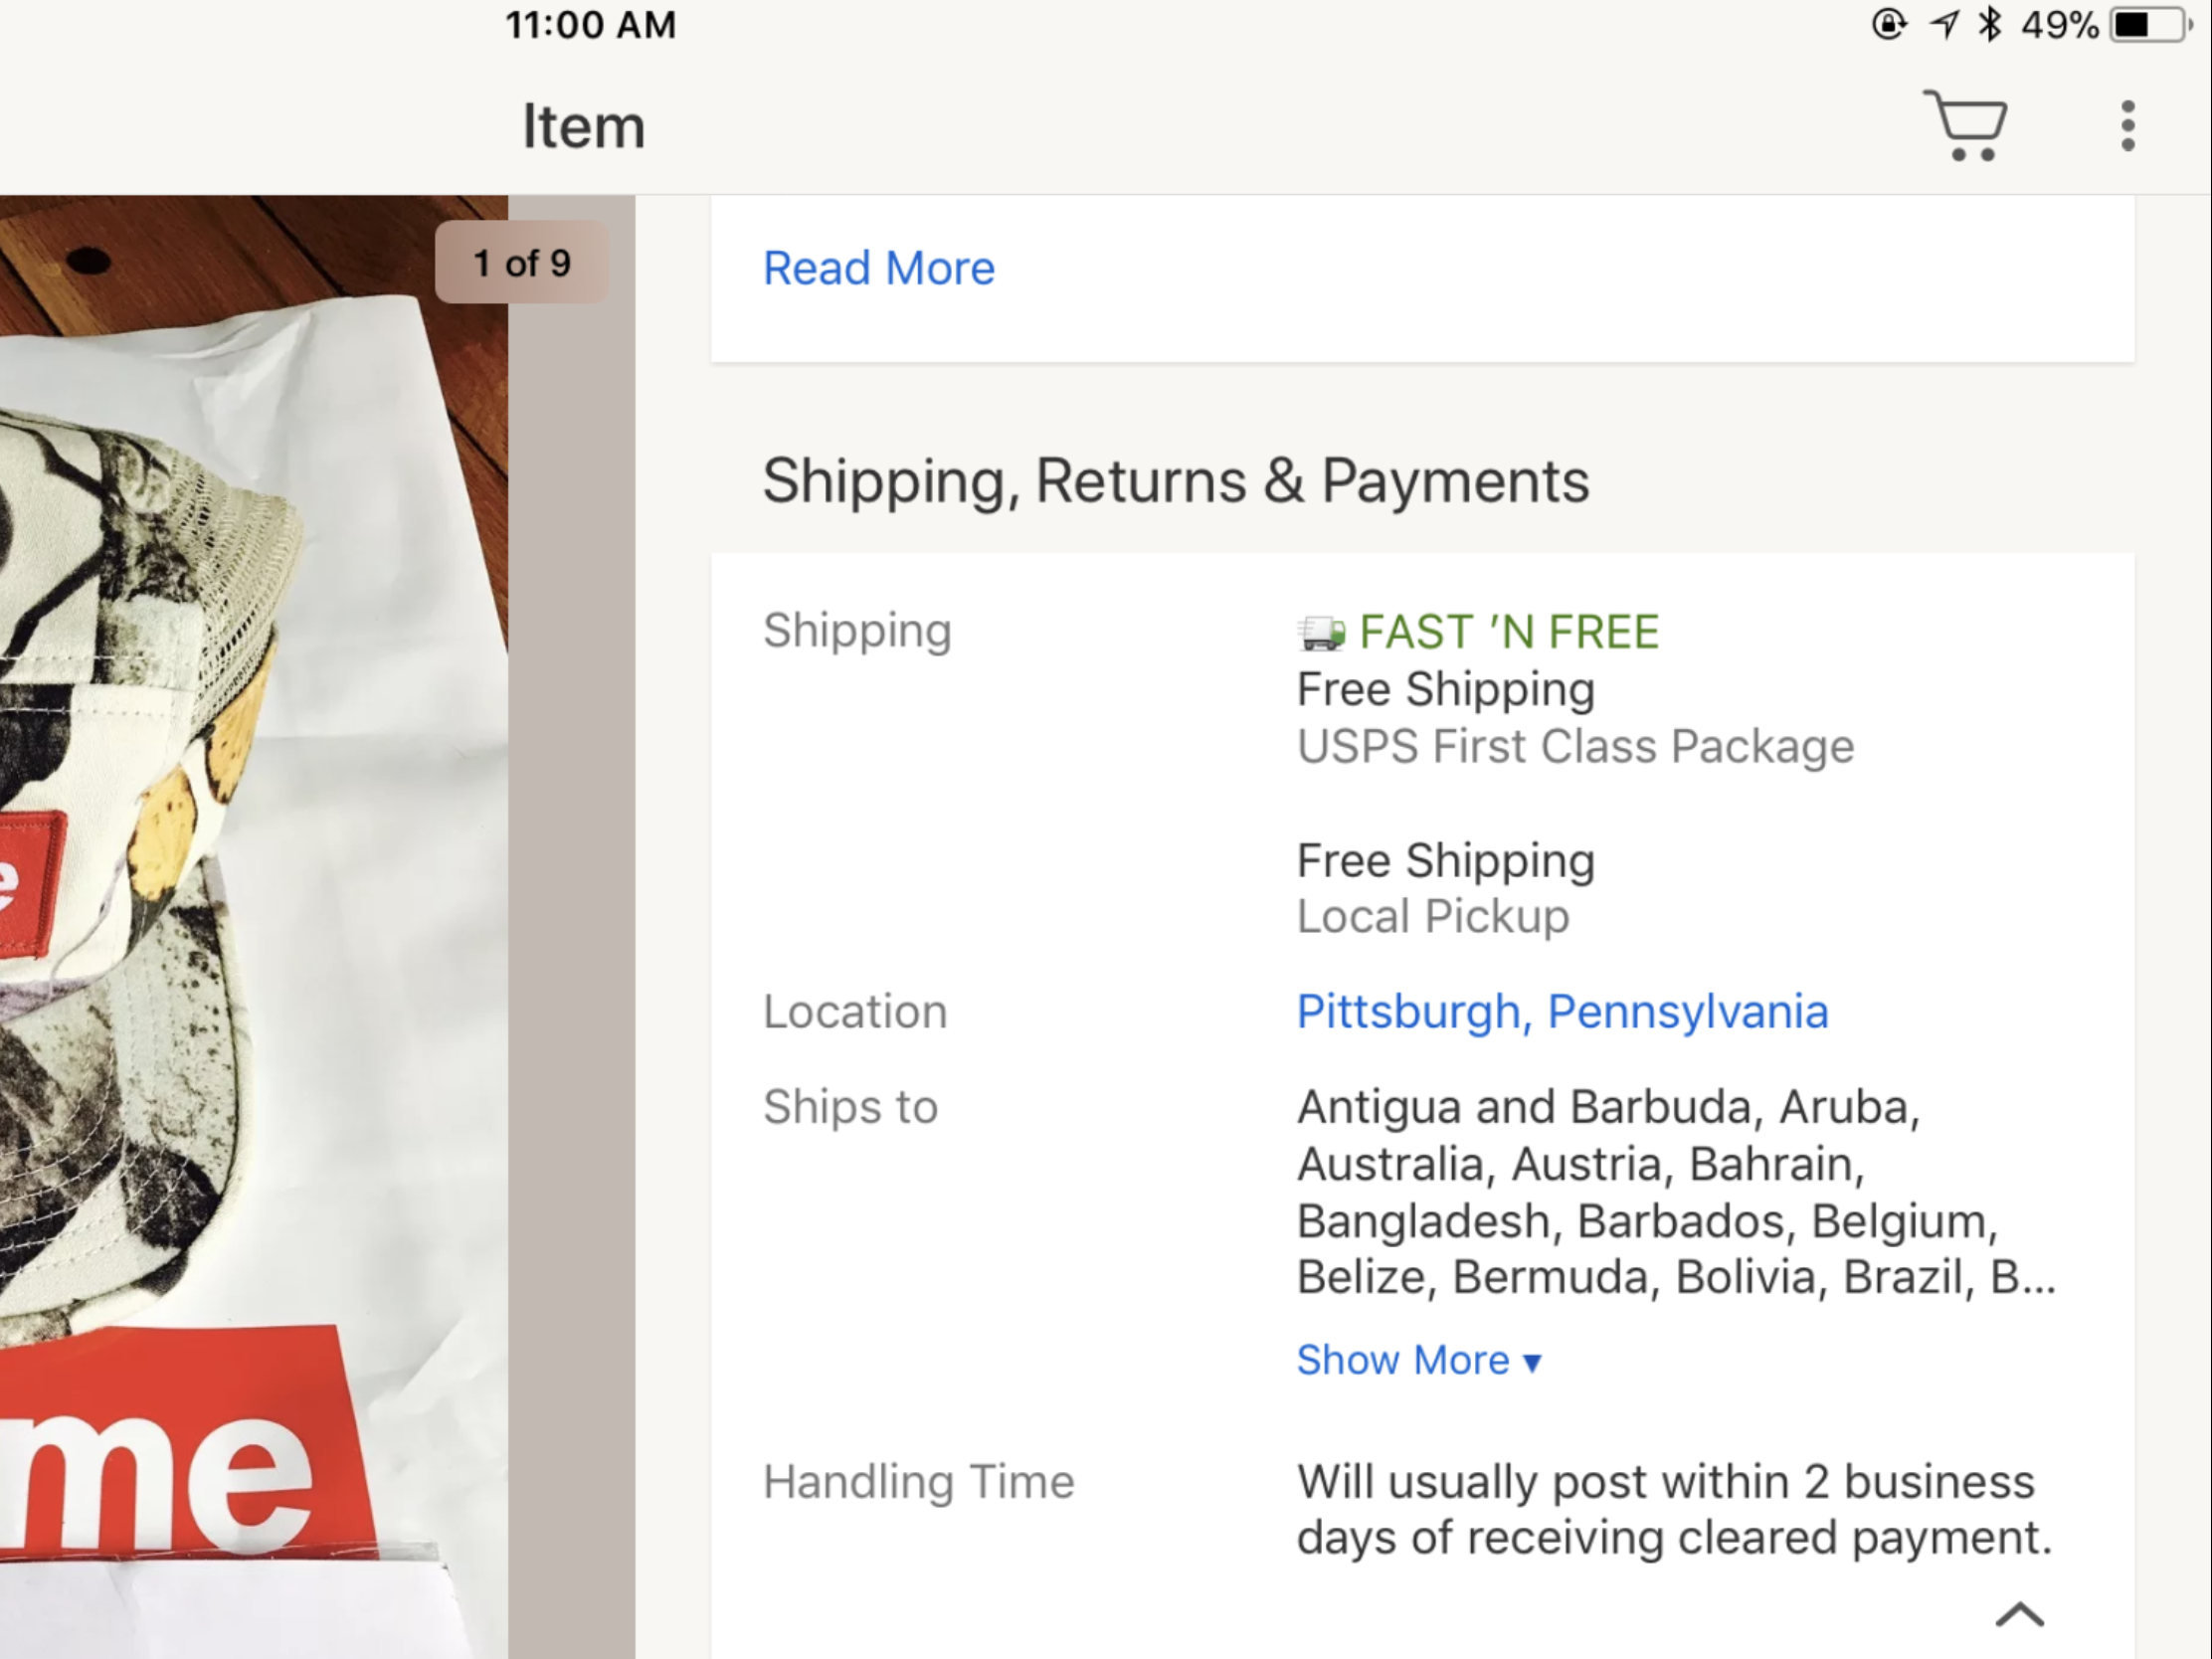 Seller Wants To Return Damaged Item From Usps The Ebay Community